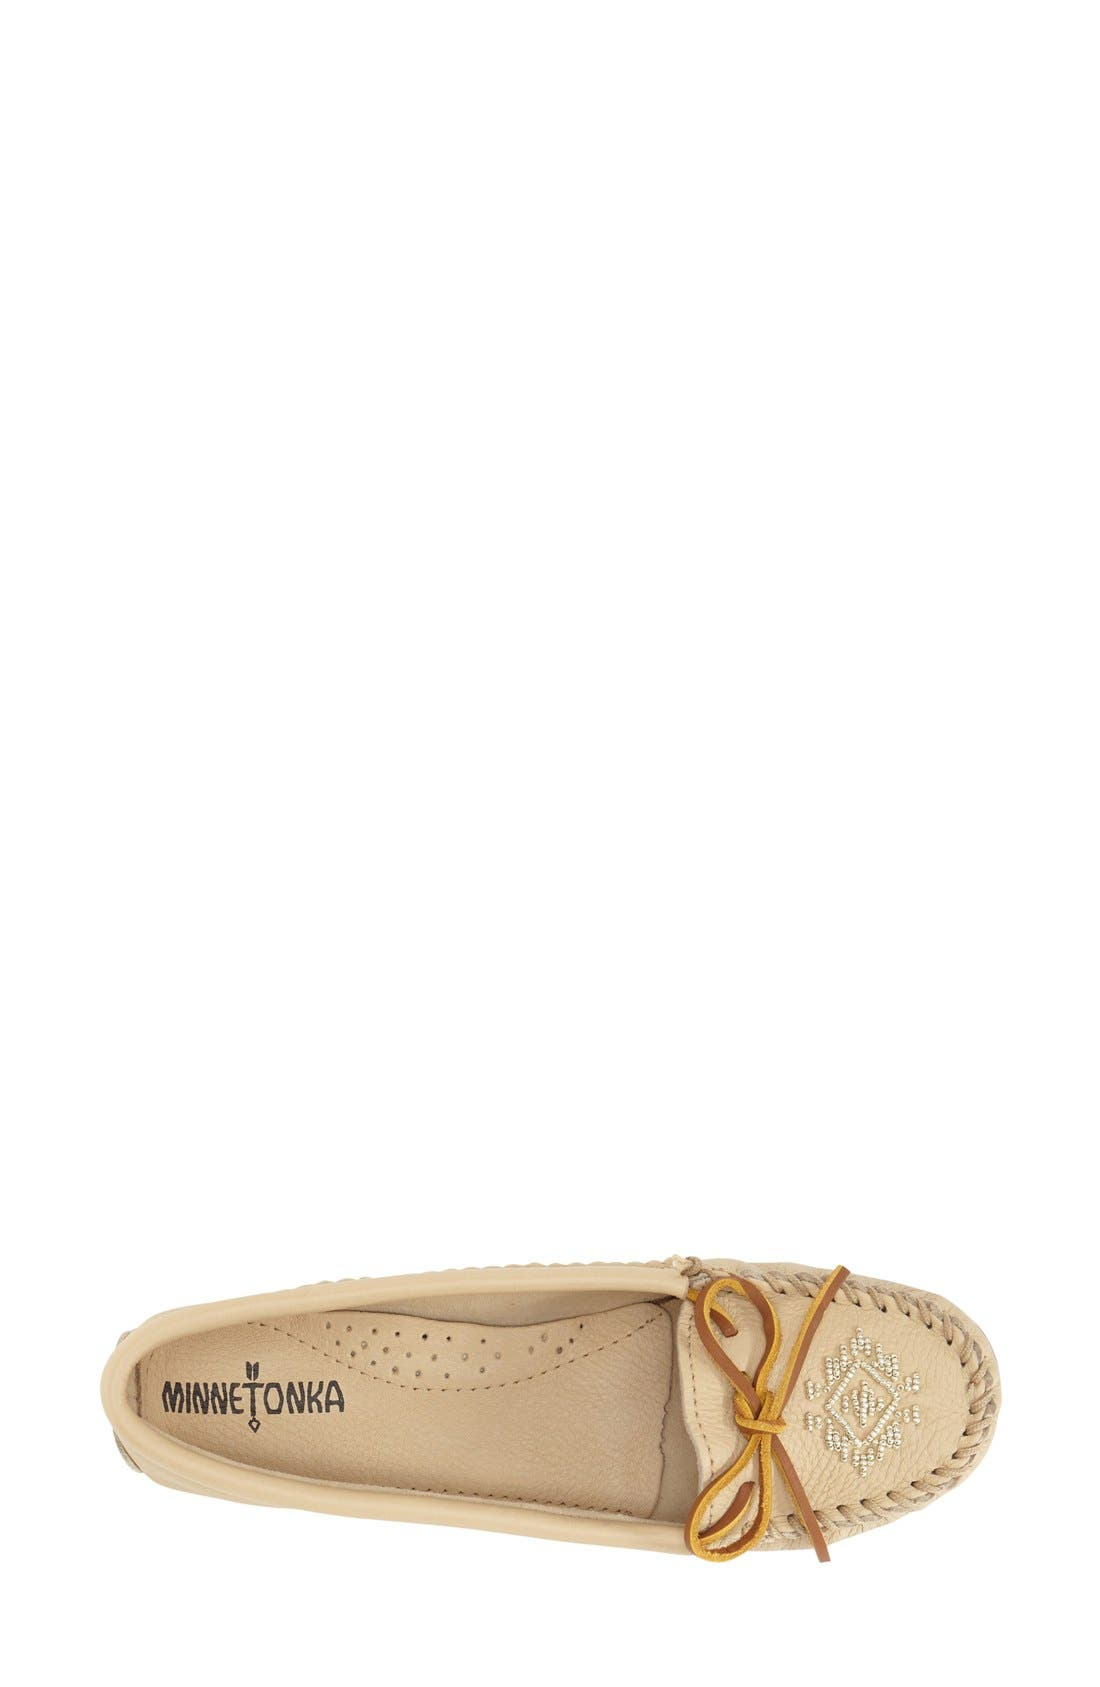 Beaded Moccasin,                             Alternate thumbnail 3, color,                             CHAMPAGNE DEERSKIN LEATHER